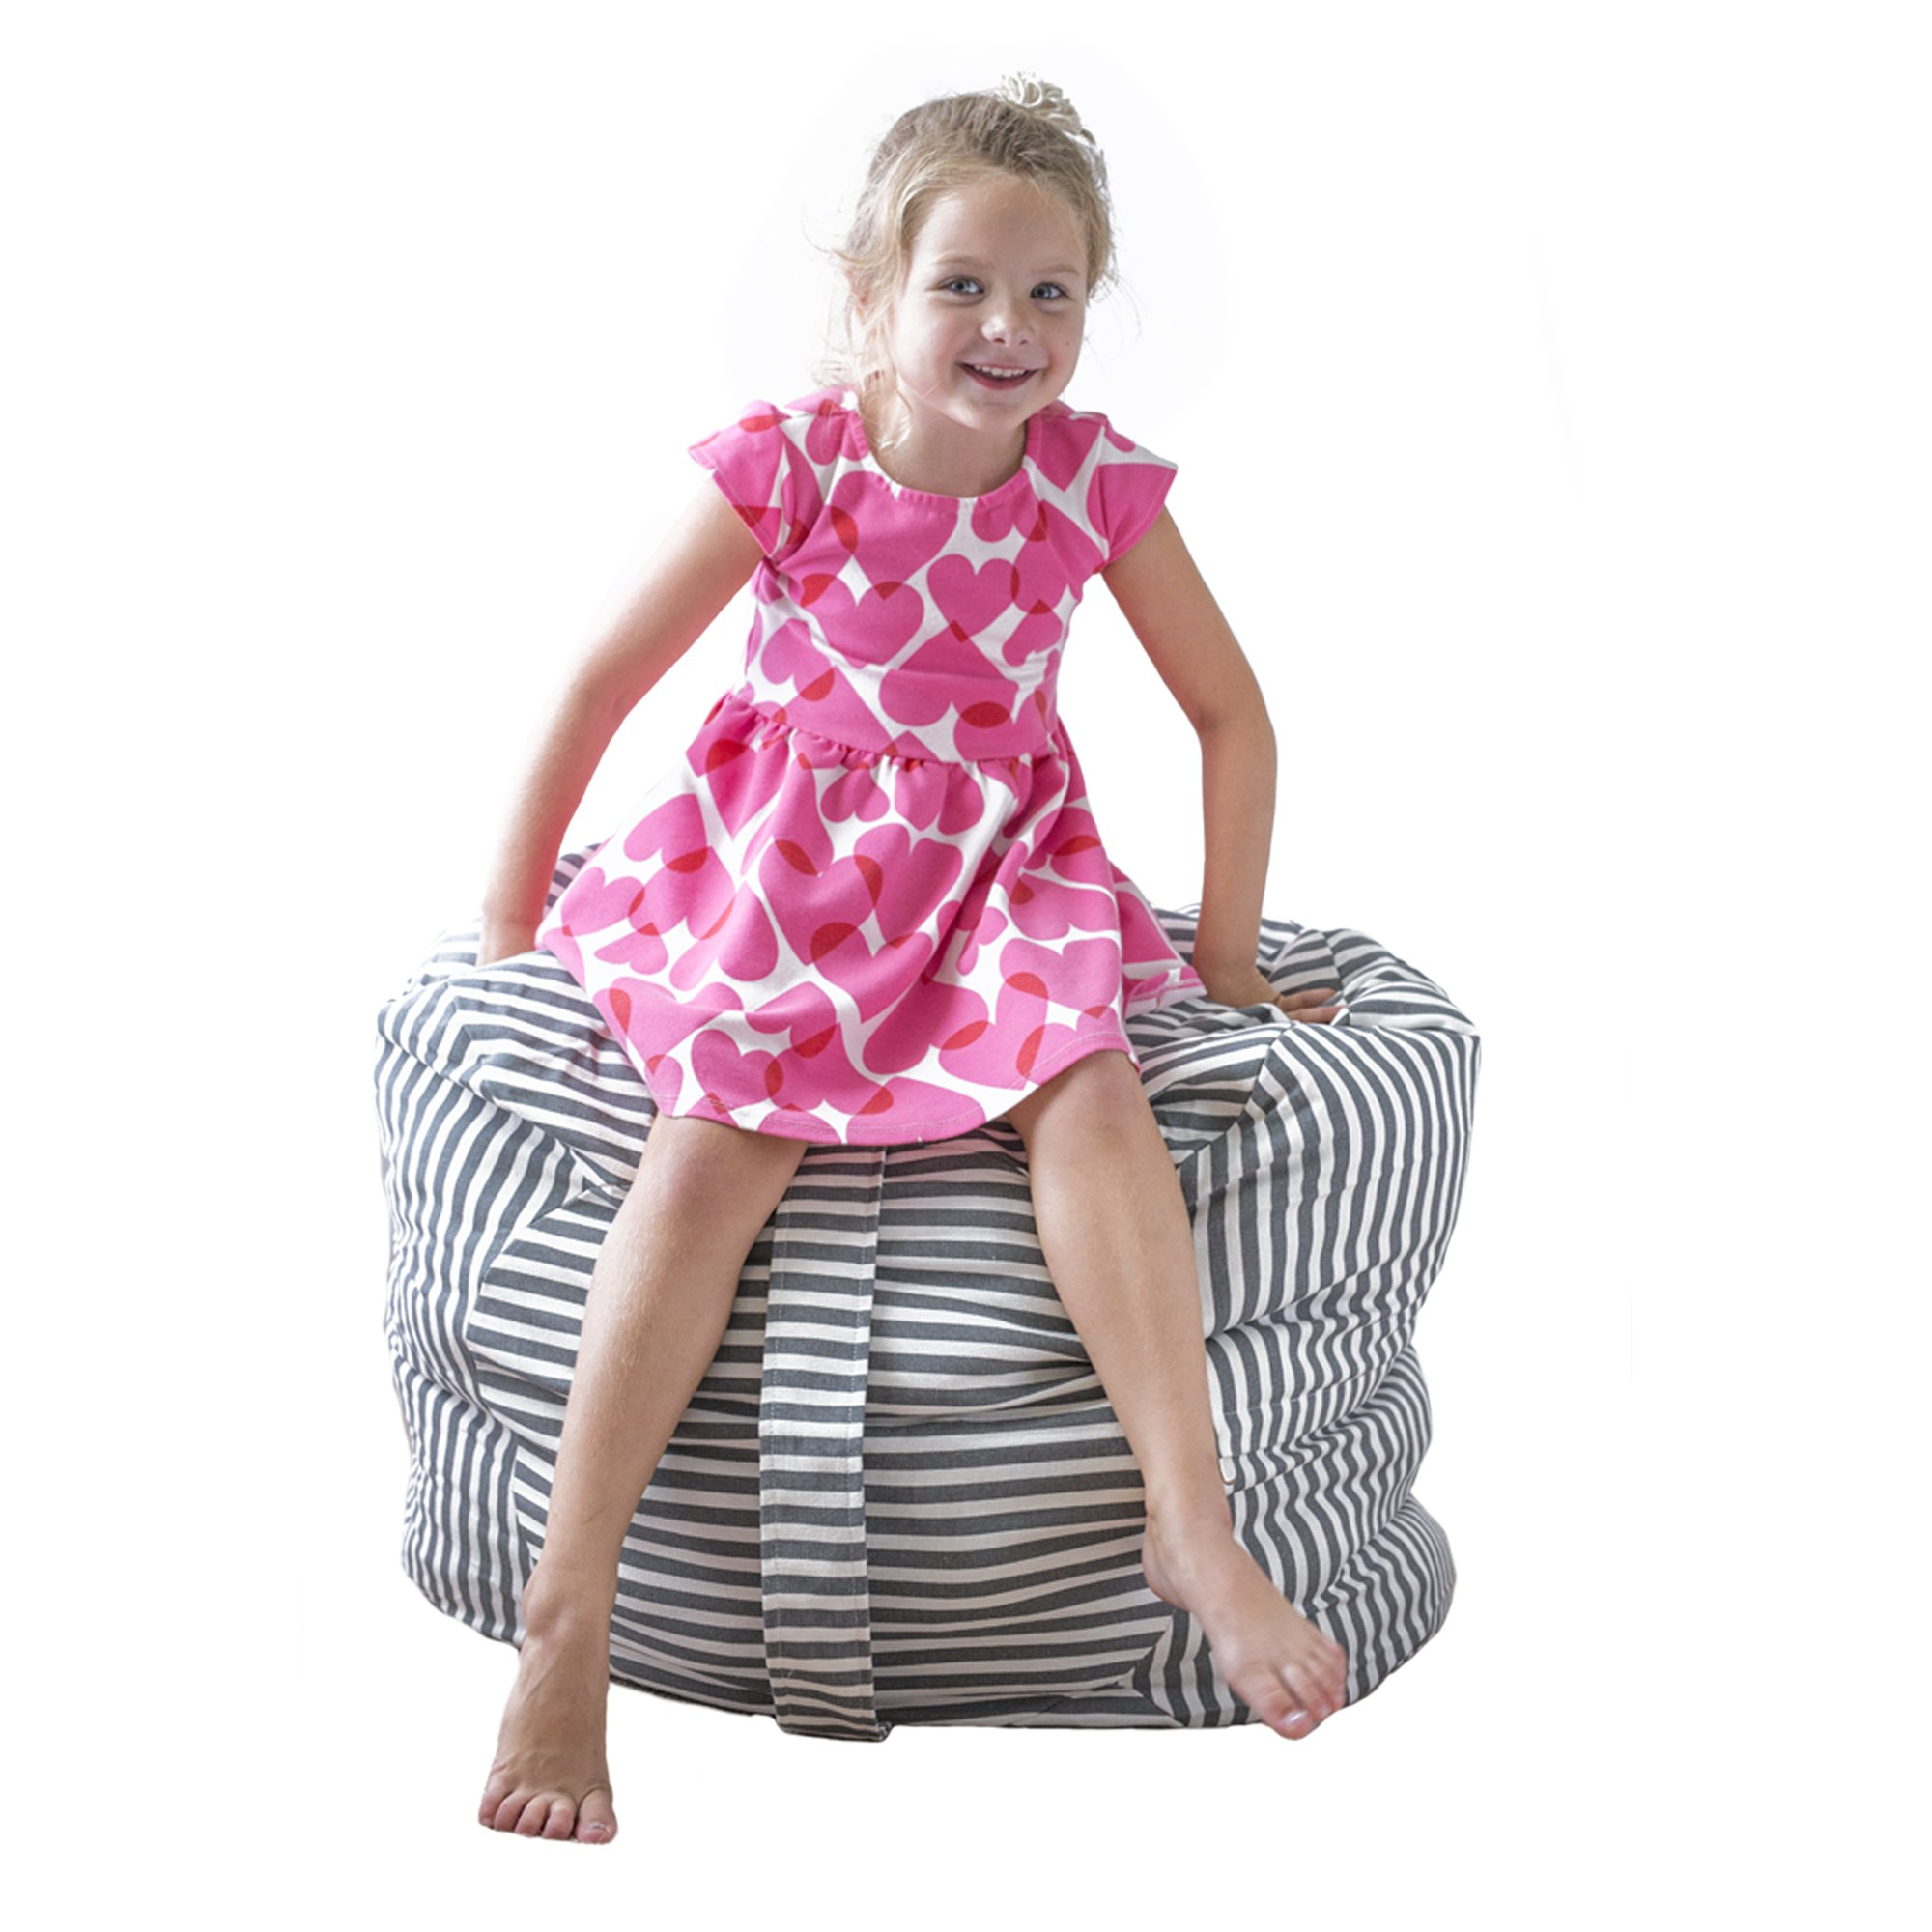 Sobel Products Kids Stuffed Animal Bean Bag Storage Chair - EXTRA LARGE - Store Toys Towels Blankets Pillows by Sobel Products